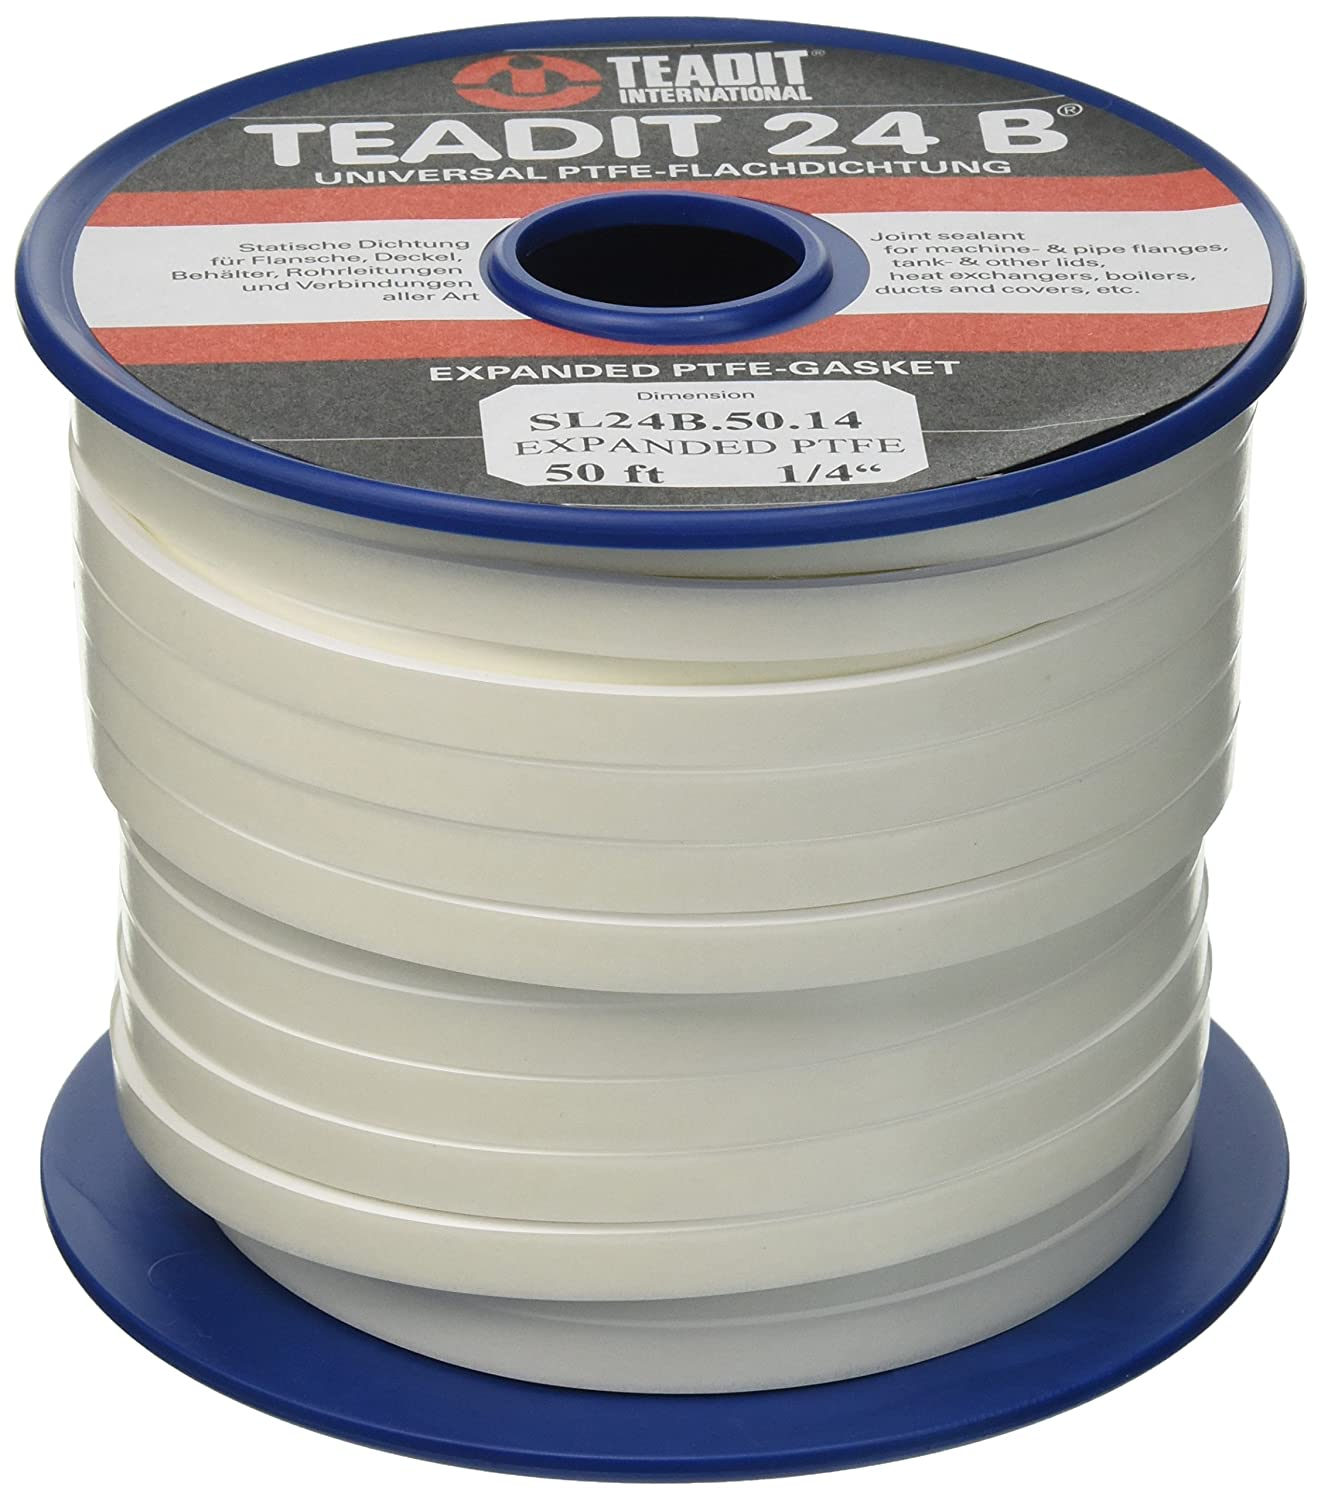 Sterling Seal and Supply STCC 1500.25050 1500 Teadit 24B White PTFE Joint Sealant for Applications in Steel Glass Lined PVC and Fiber Glass Pipe Flanges Fume Ducts Concrete Lids Heat Exchangers 1 4 Wide 50'